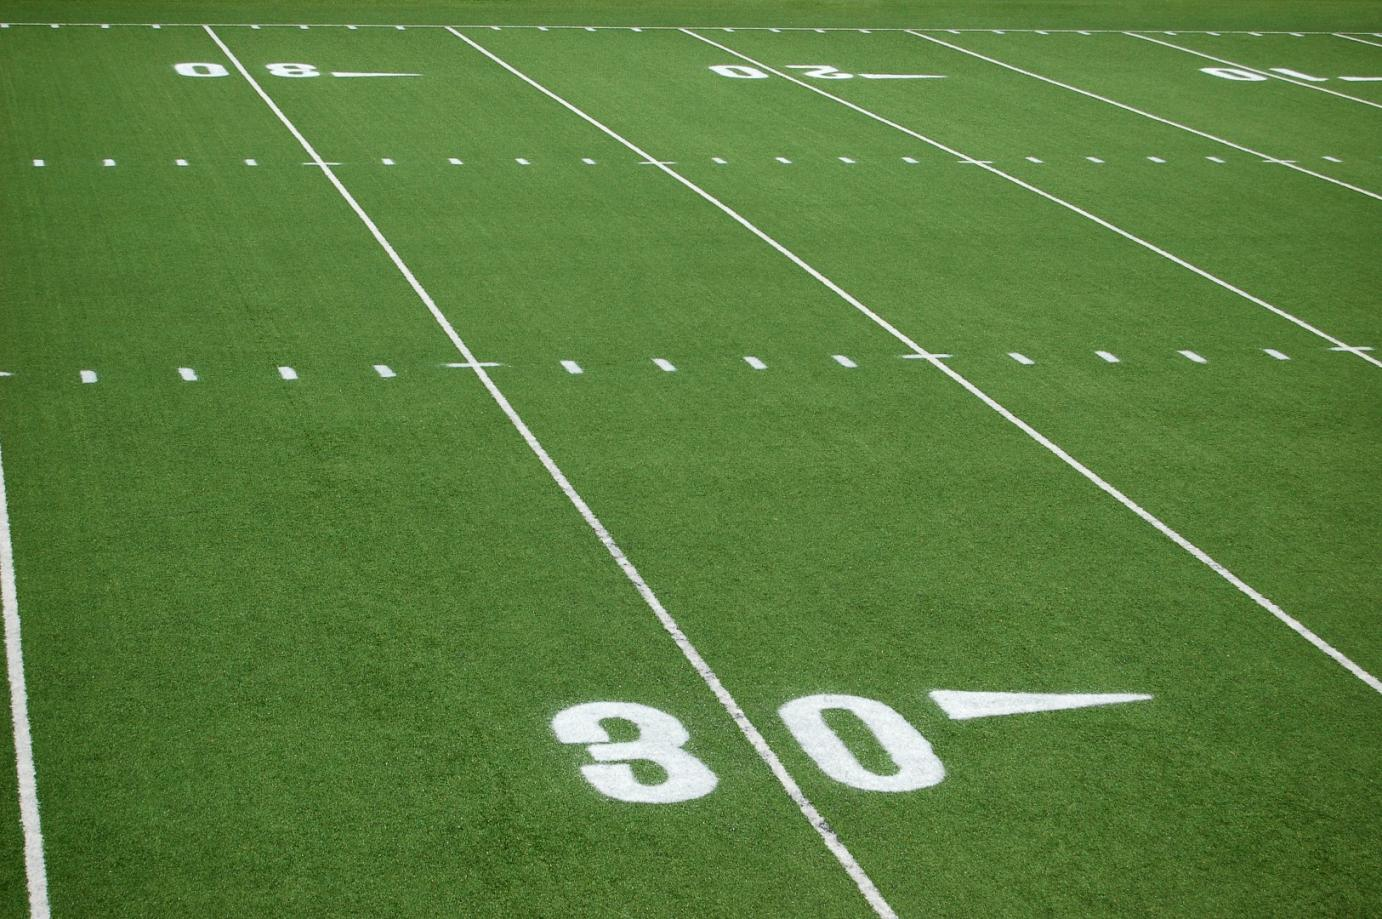 fakegrass High School - New Turf Sports Fields